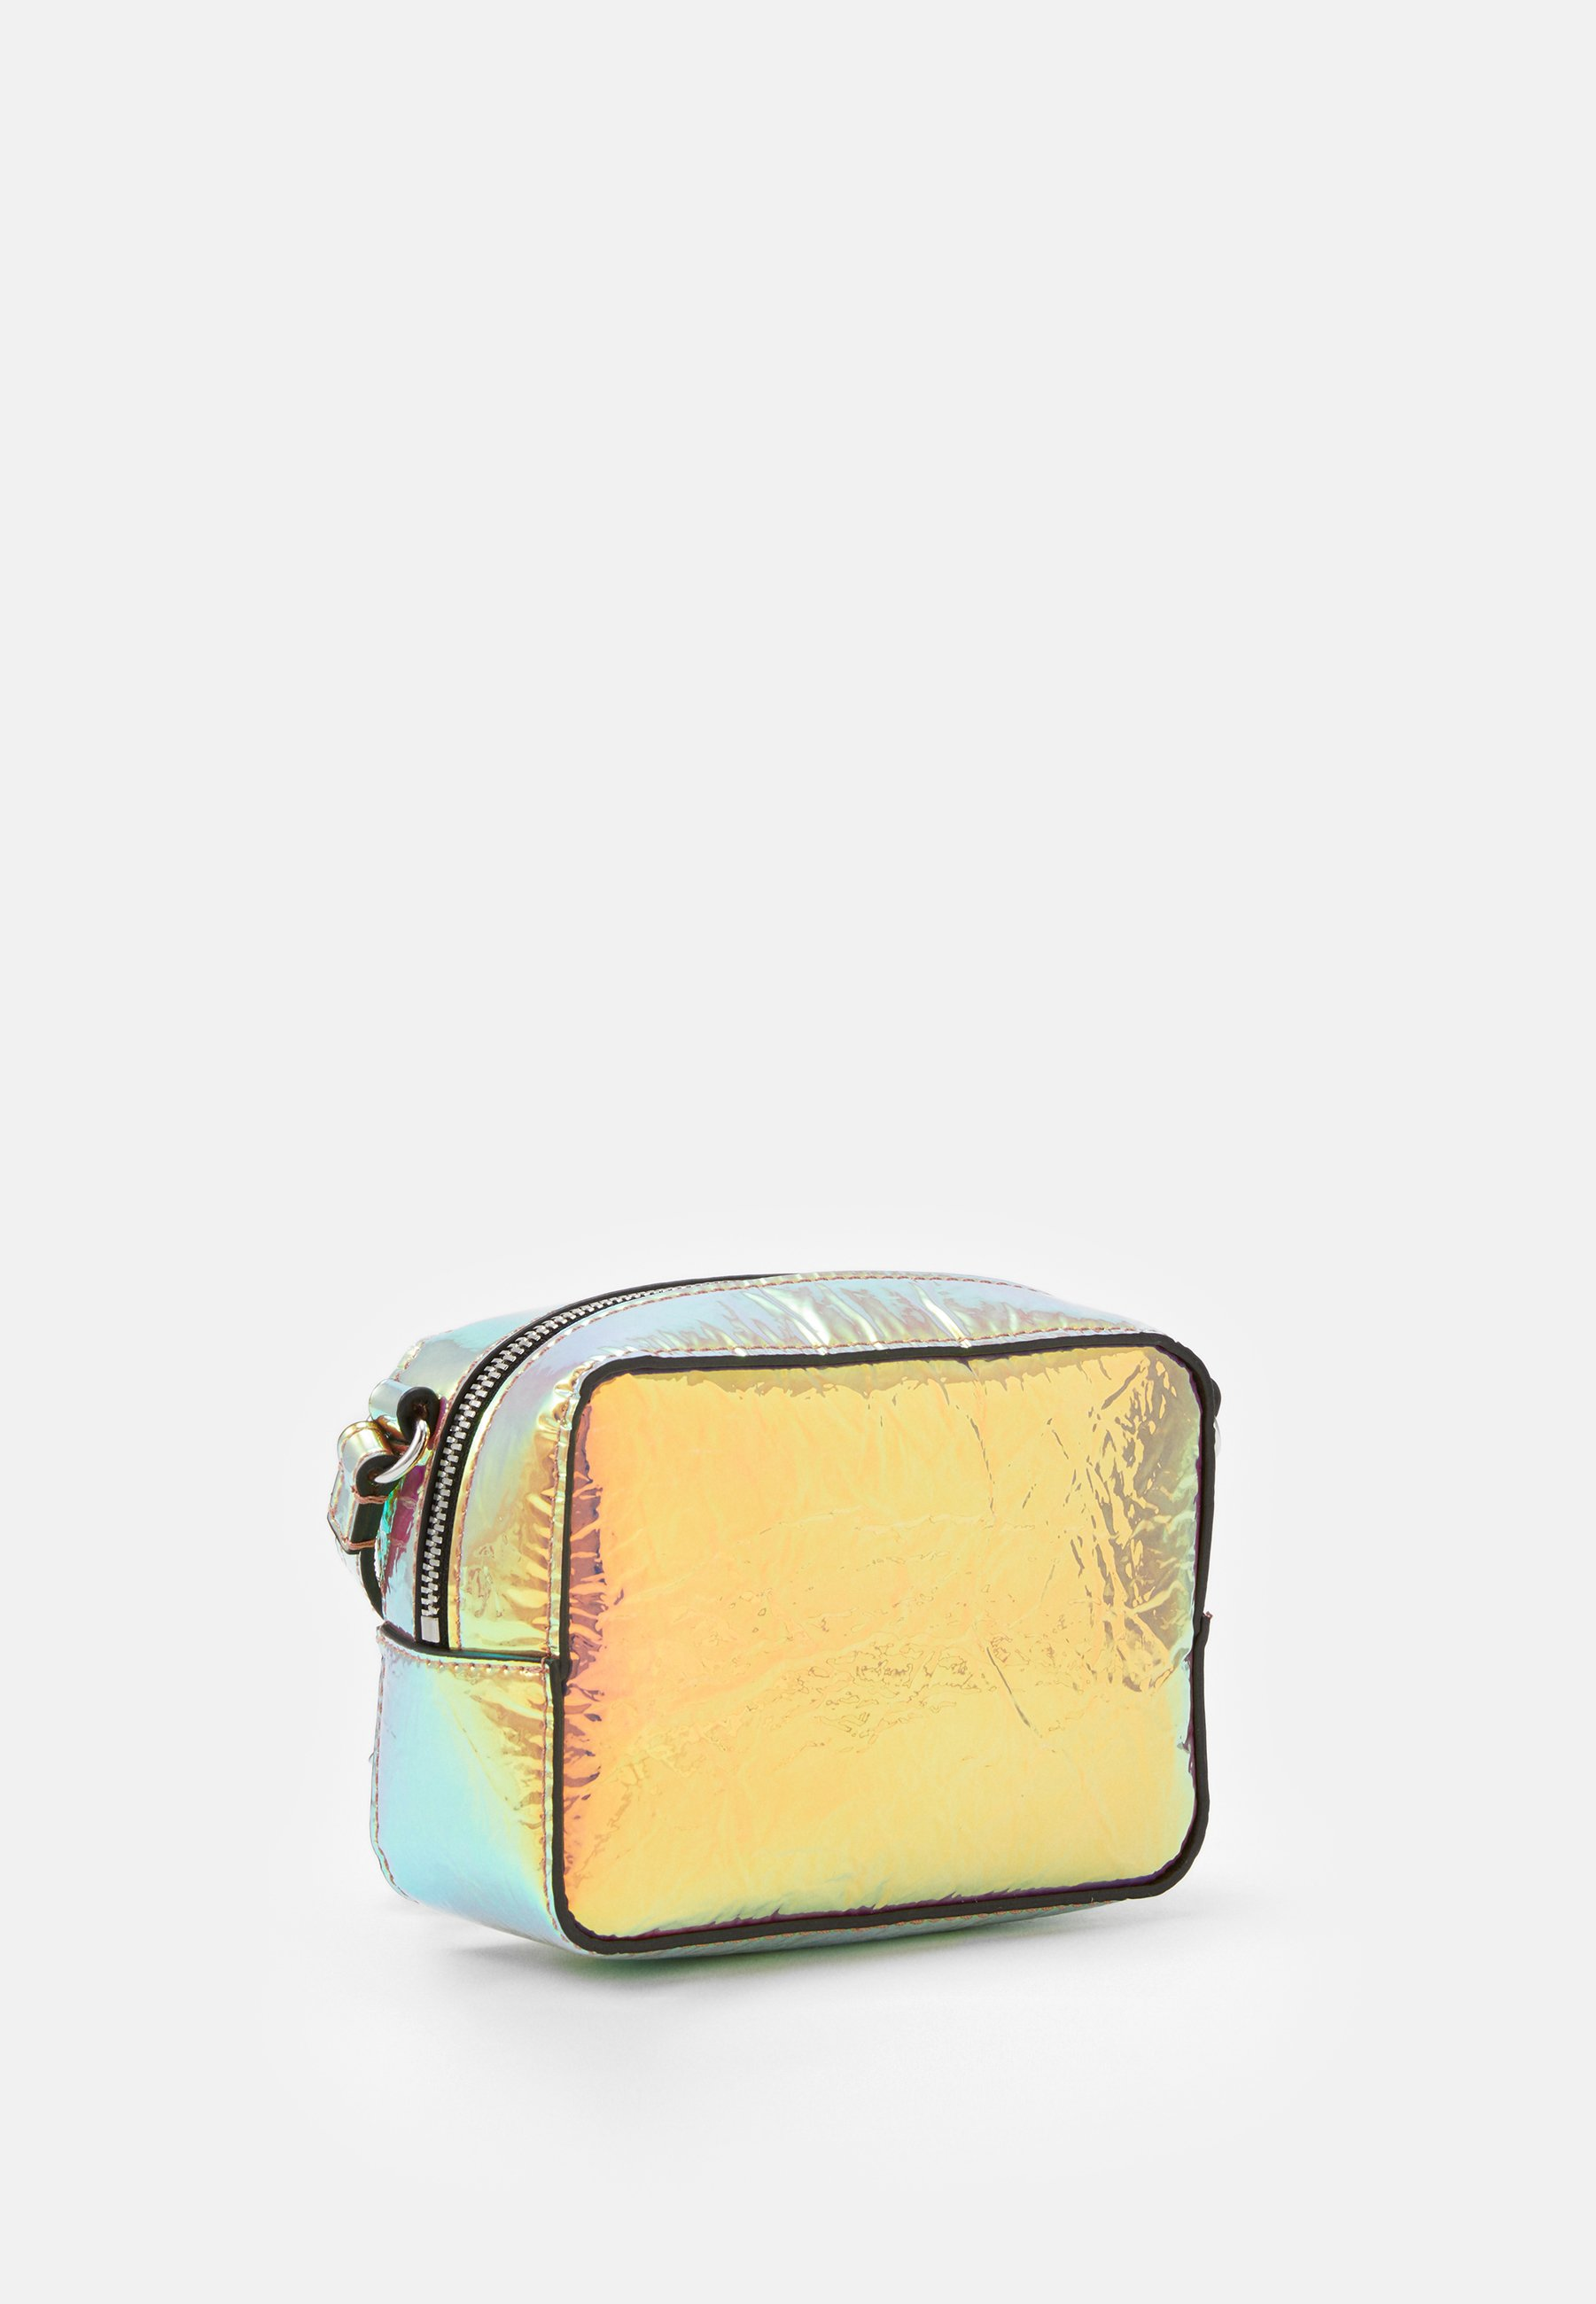 2020 Lowest Price Accessories Calvin Klein Jeans CAMERA BAG IRIDESCENT Across body bag grey bCCGCa2na acDdQa67F